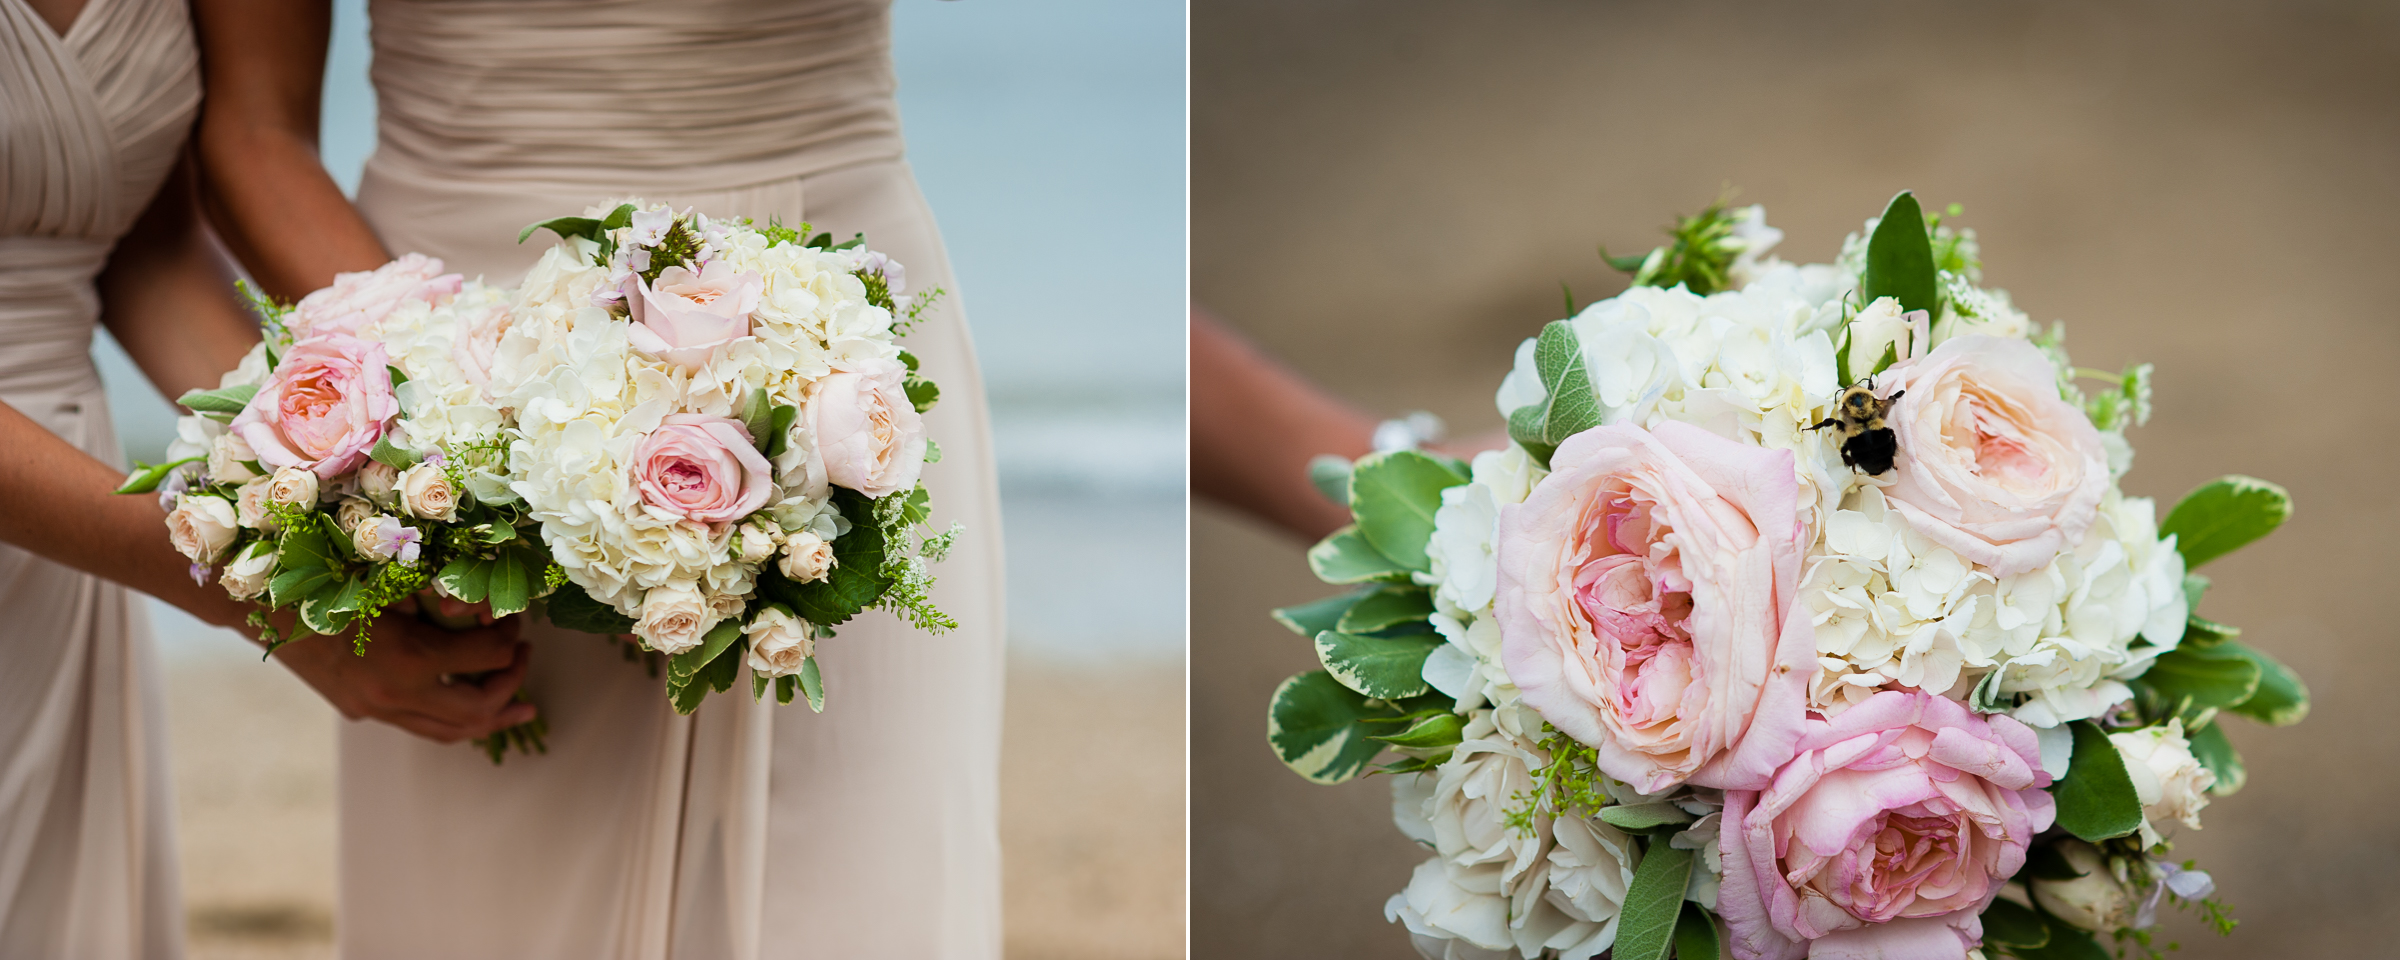 a little bee decided to land on the gorgeous bridesmaid bouquets